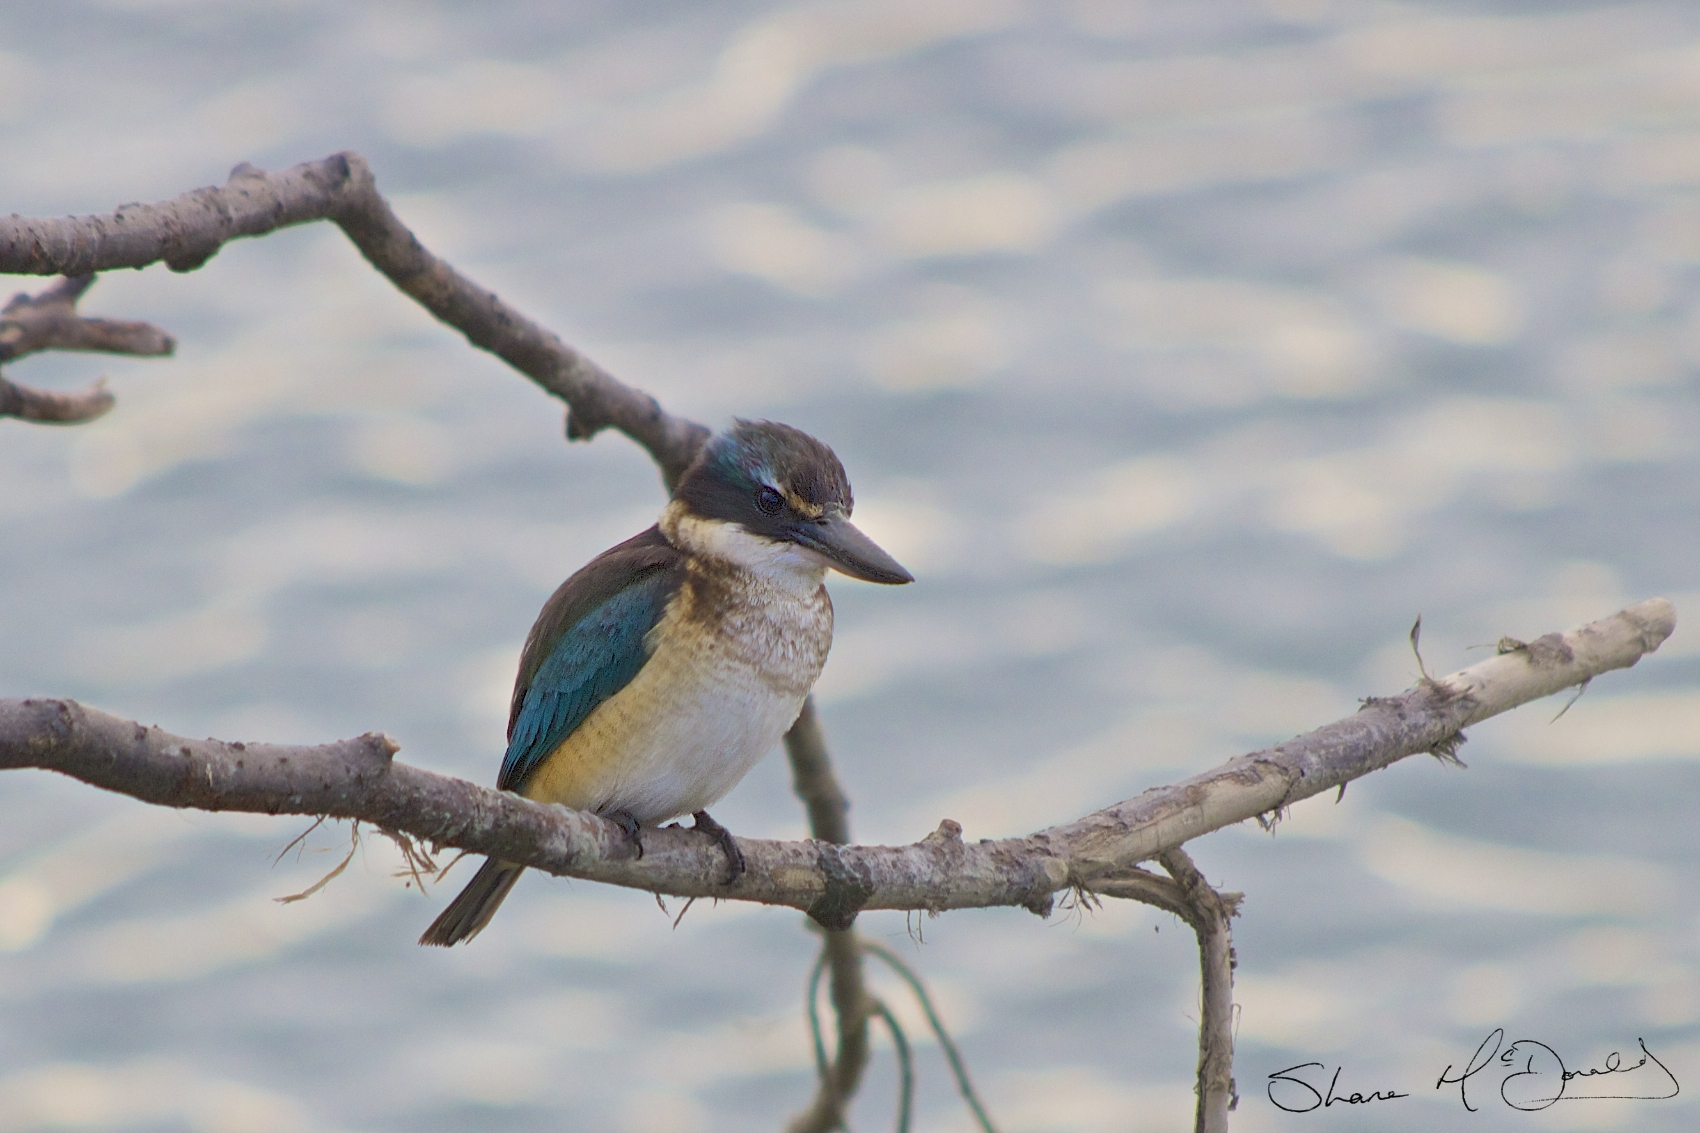 Kingfisher type bird in New Zealand – New Zealand Kingfisher ?